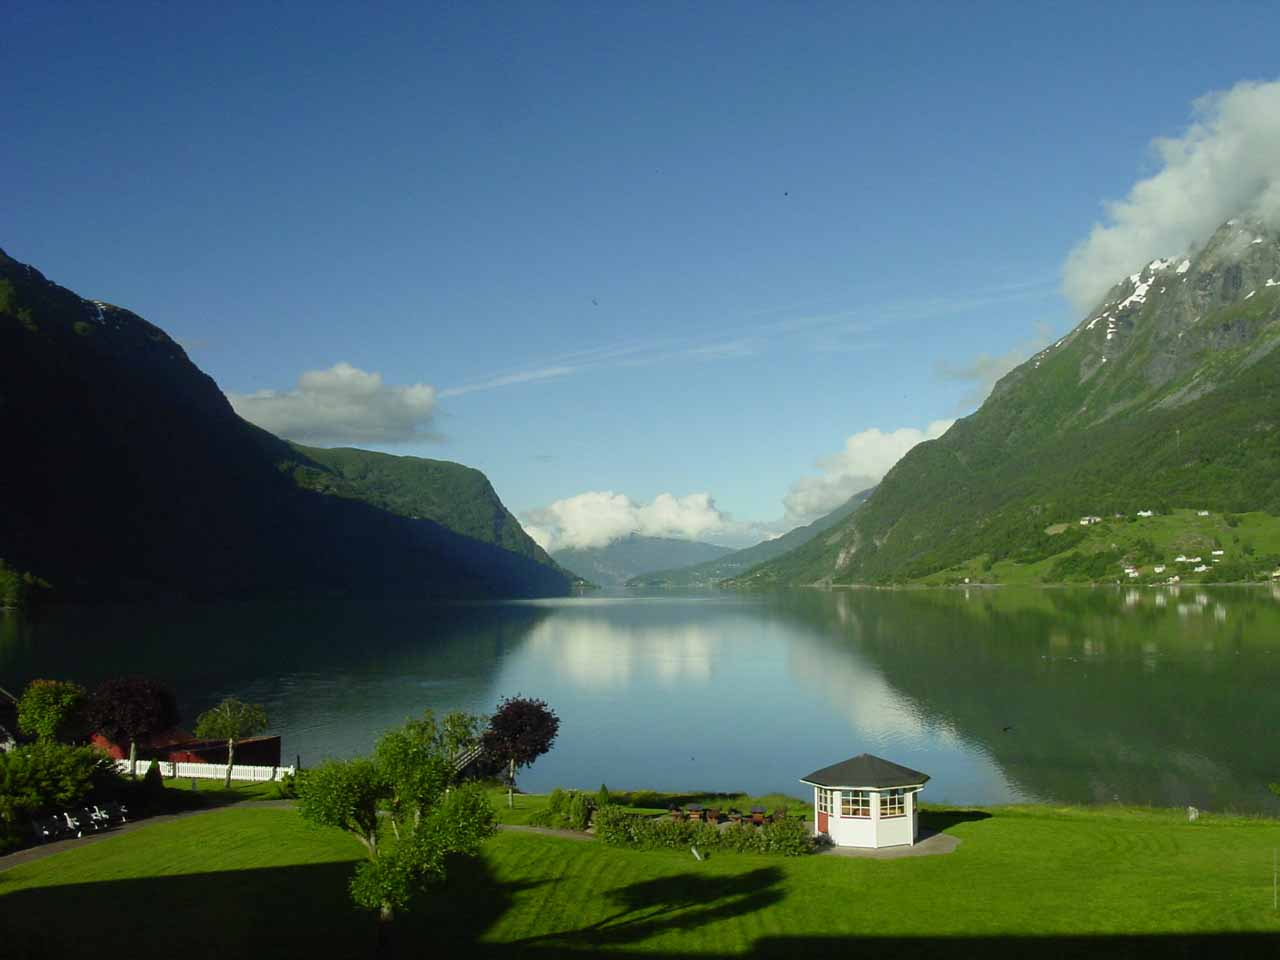 This was the scenic Lustrafjorden from our accommodation in Skjolden, where we had spent the night after doing our Utladalen hike the day before